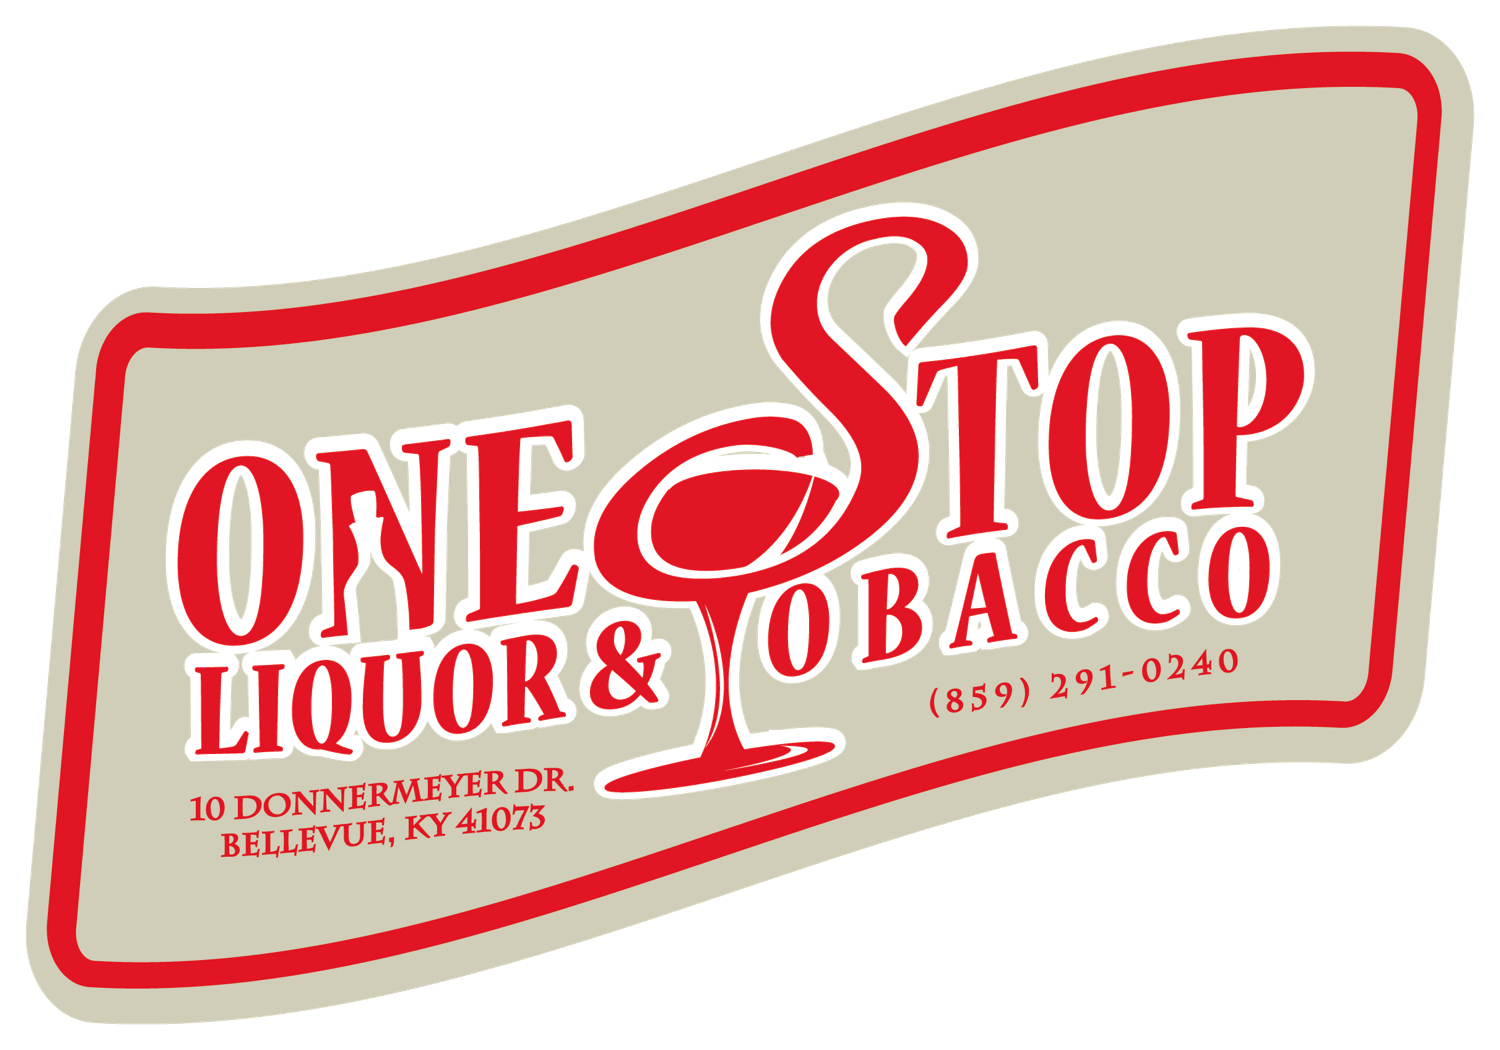 one stop liquor & tabacco